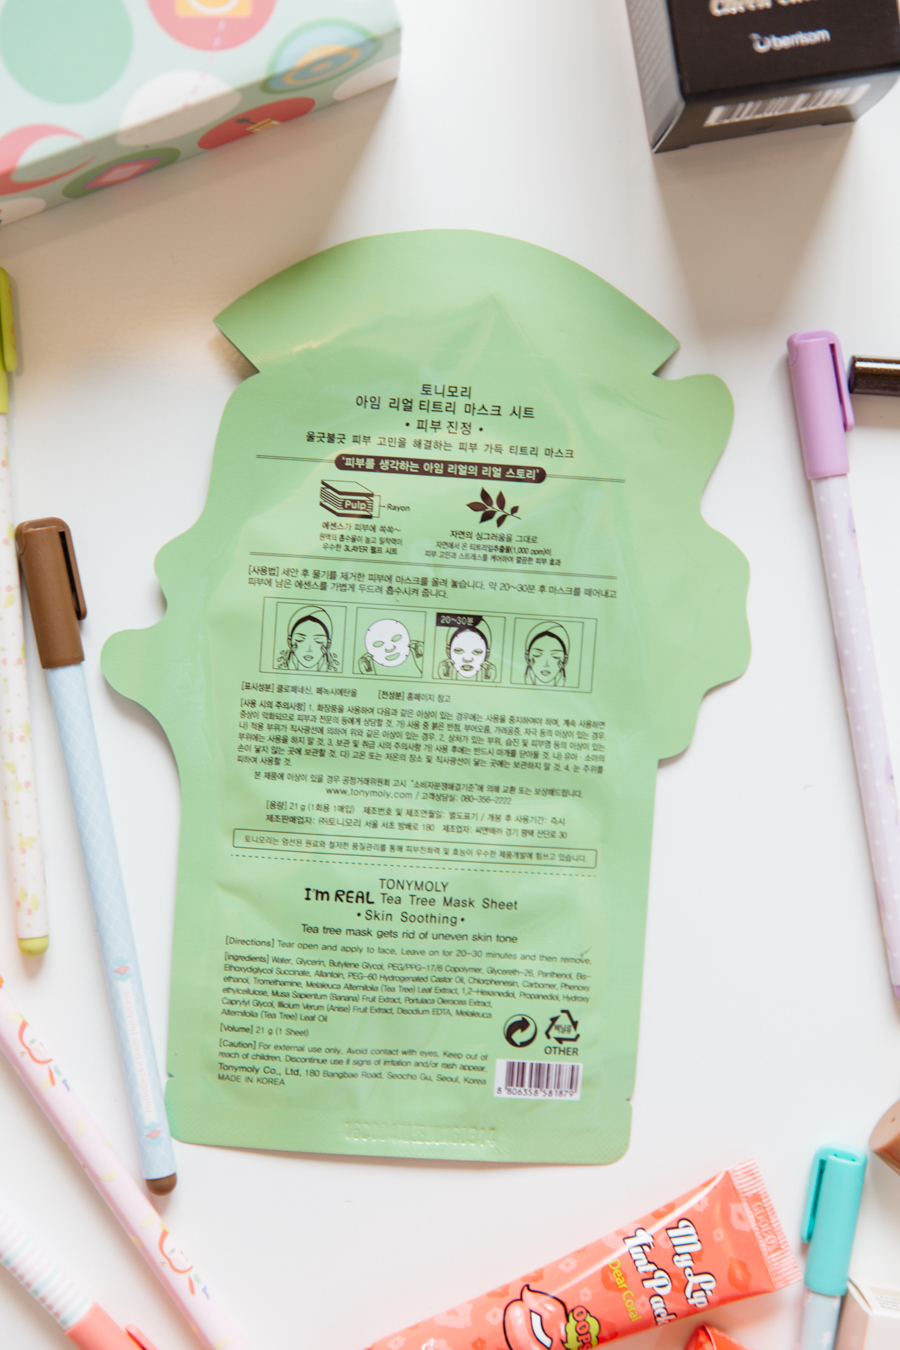 Korean skin masks.